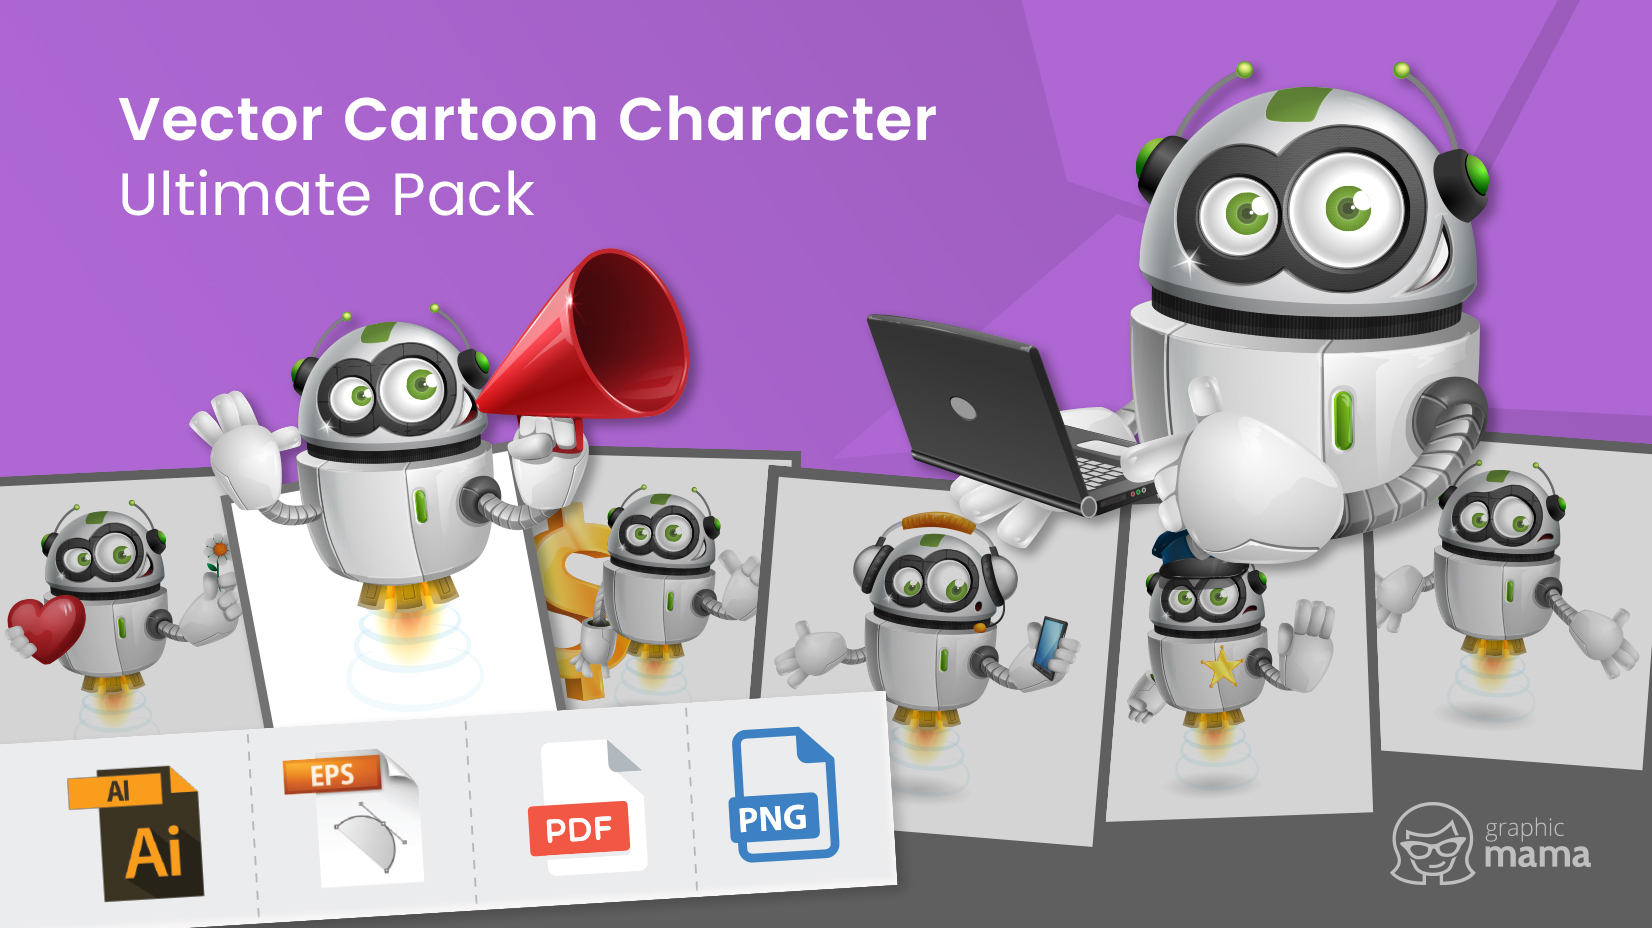 Vector Cartoon Character Ultimate Pack by GraphicMama: from A to Z